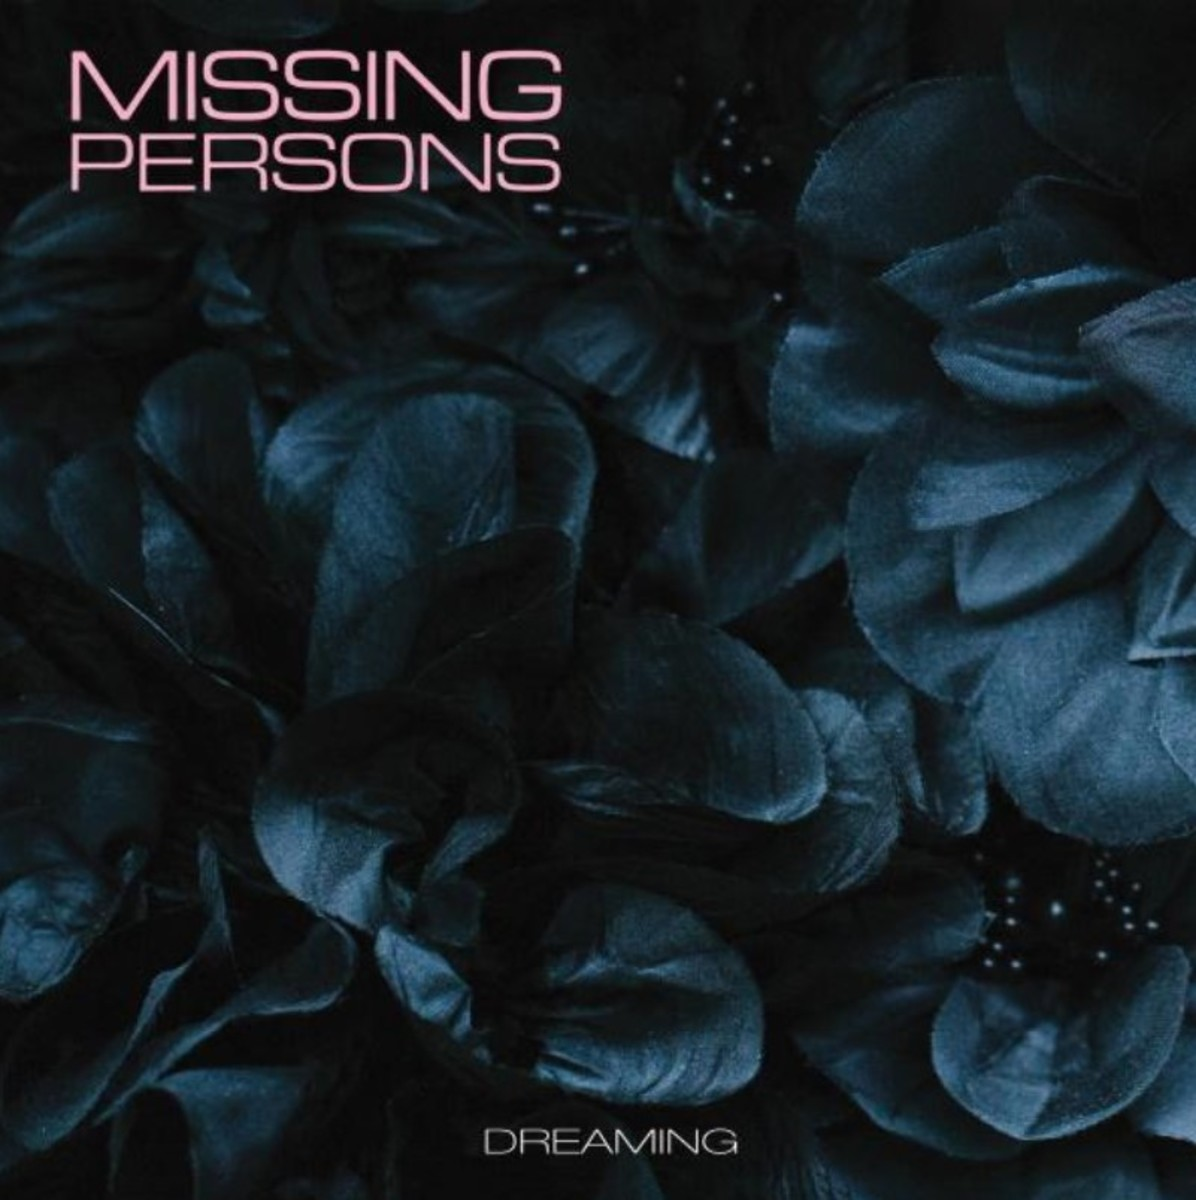 Missing Persons Dreaming album 2020